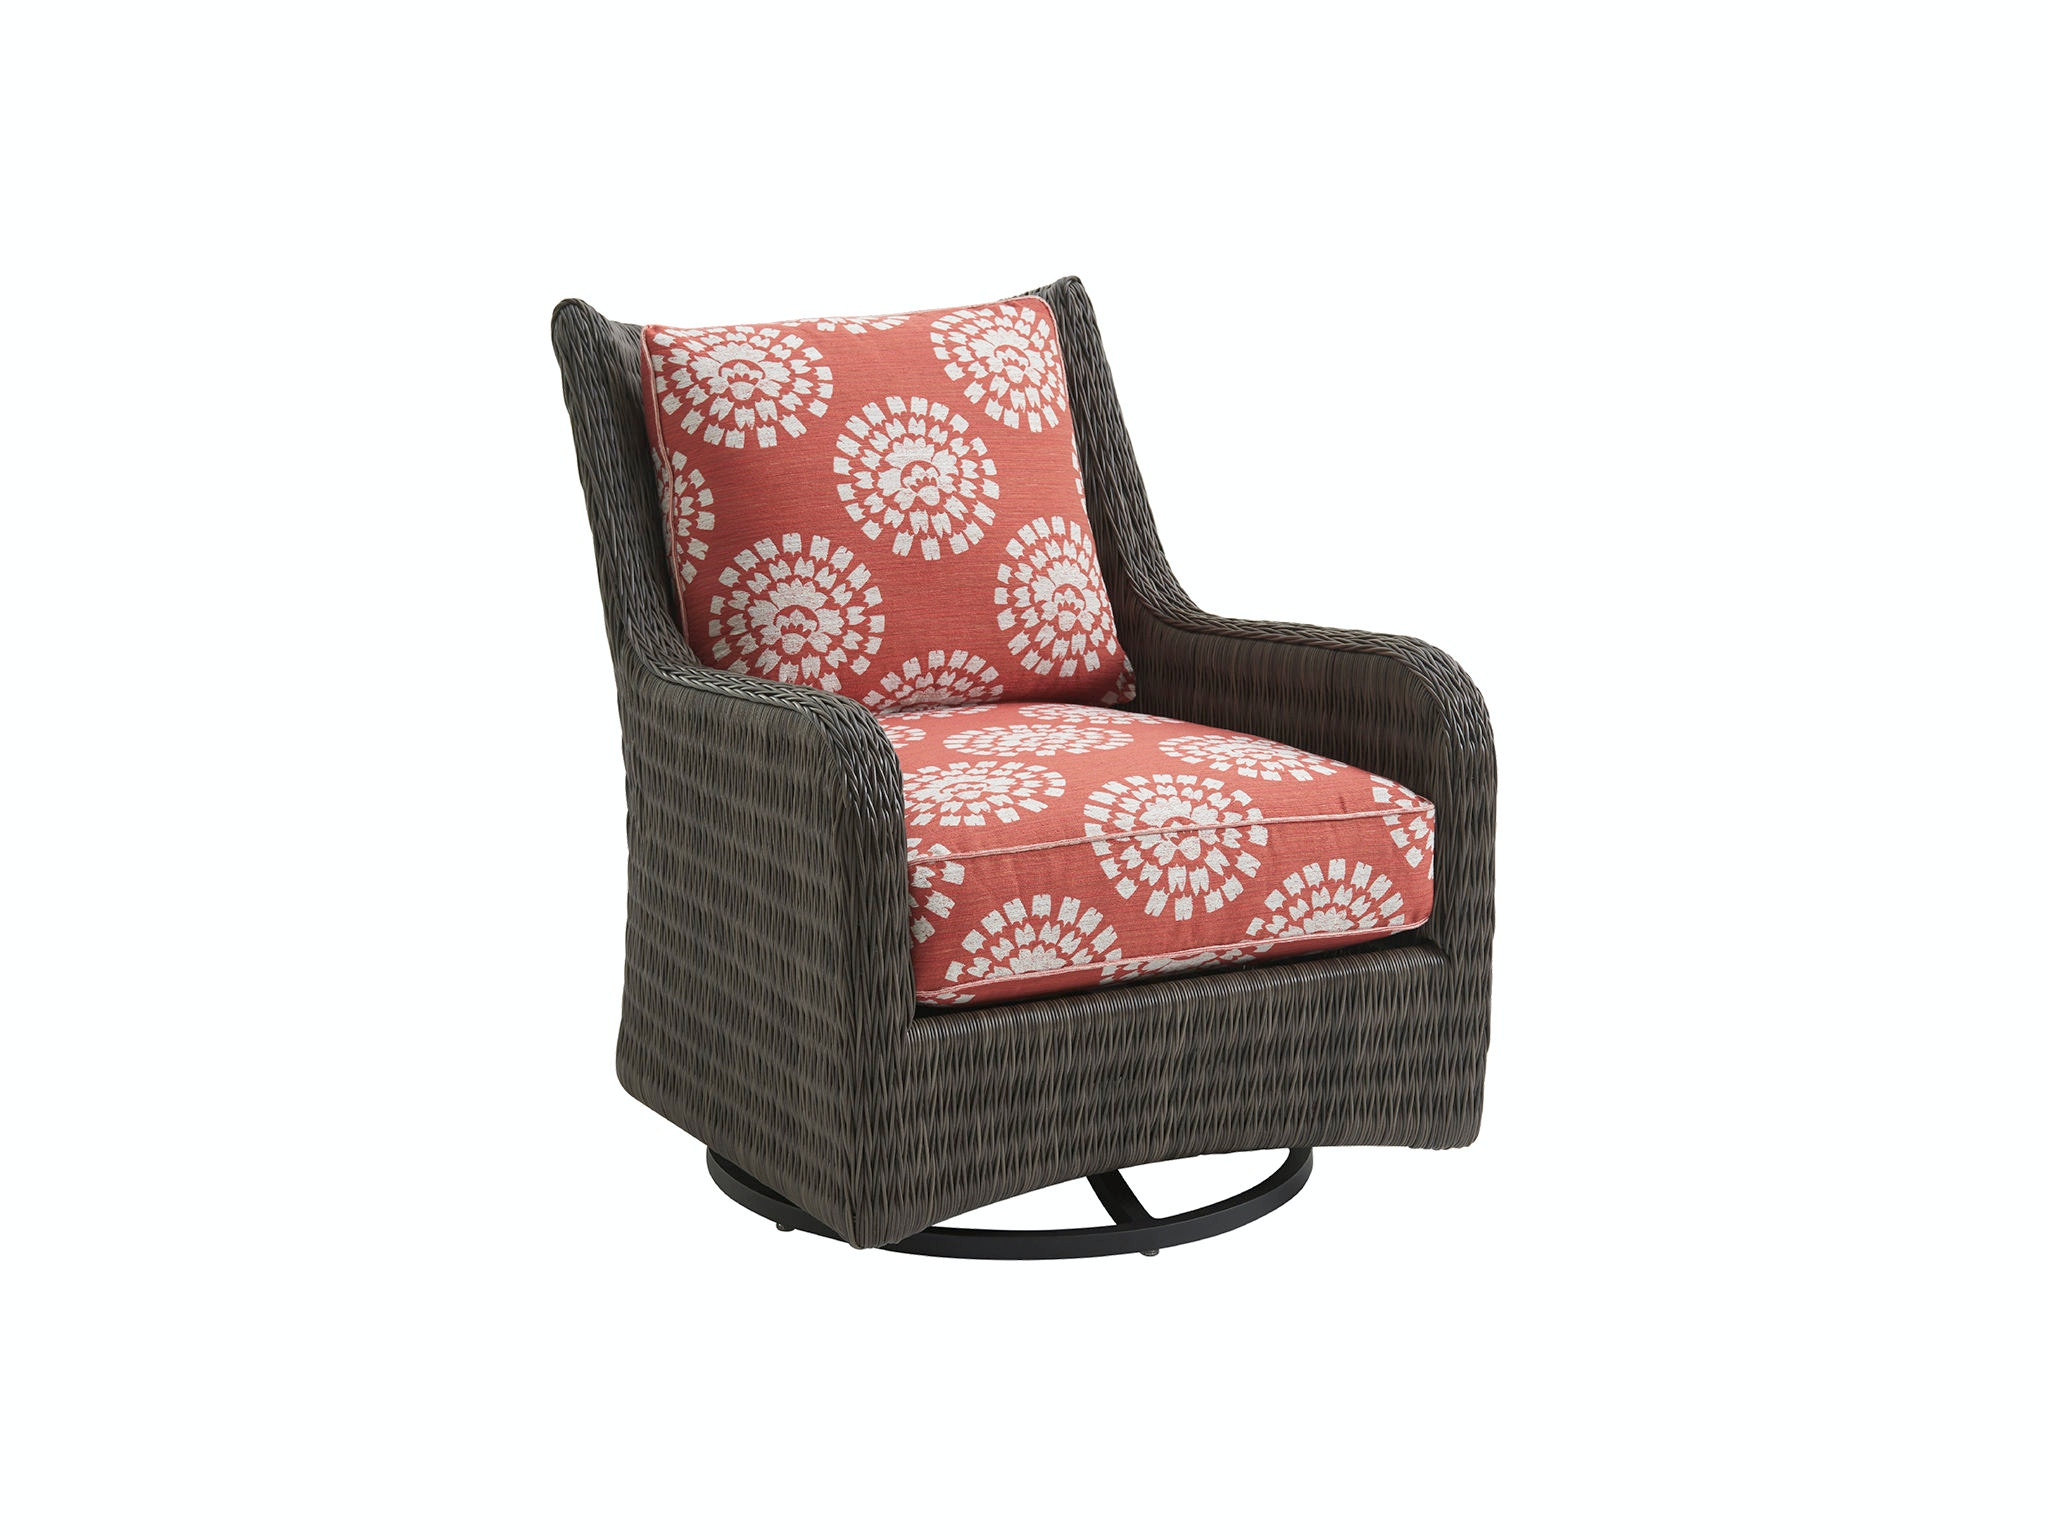 Exceptionnel Tommy Bahama Outdoor Living Outdoor/Patio Occasional Swivel Glider Chair  3900 10SG   Patios USA   USA Questions? Call 888.643.6003